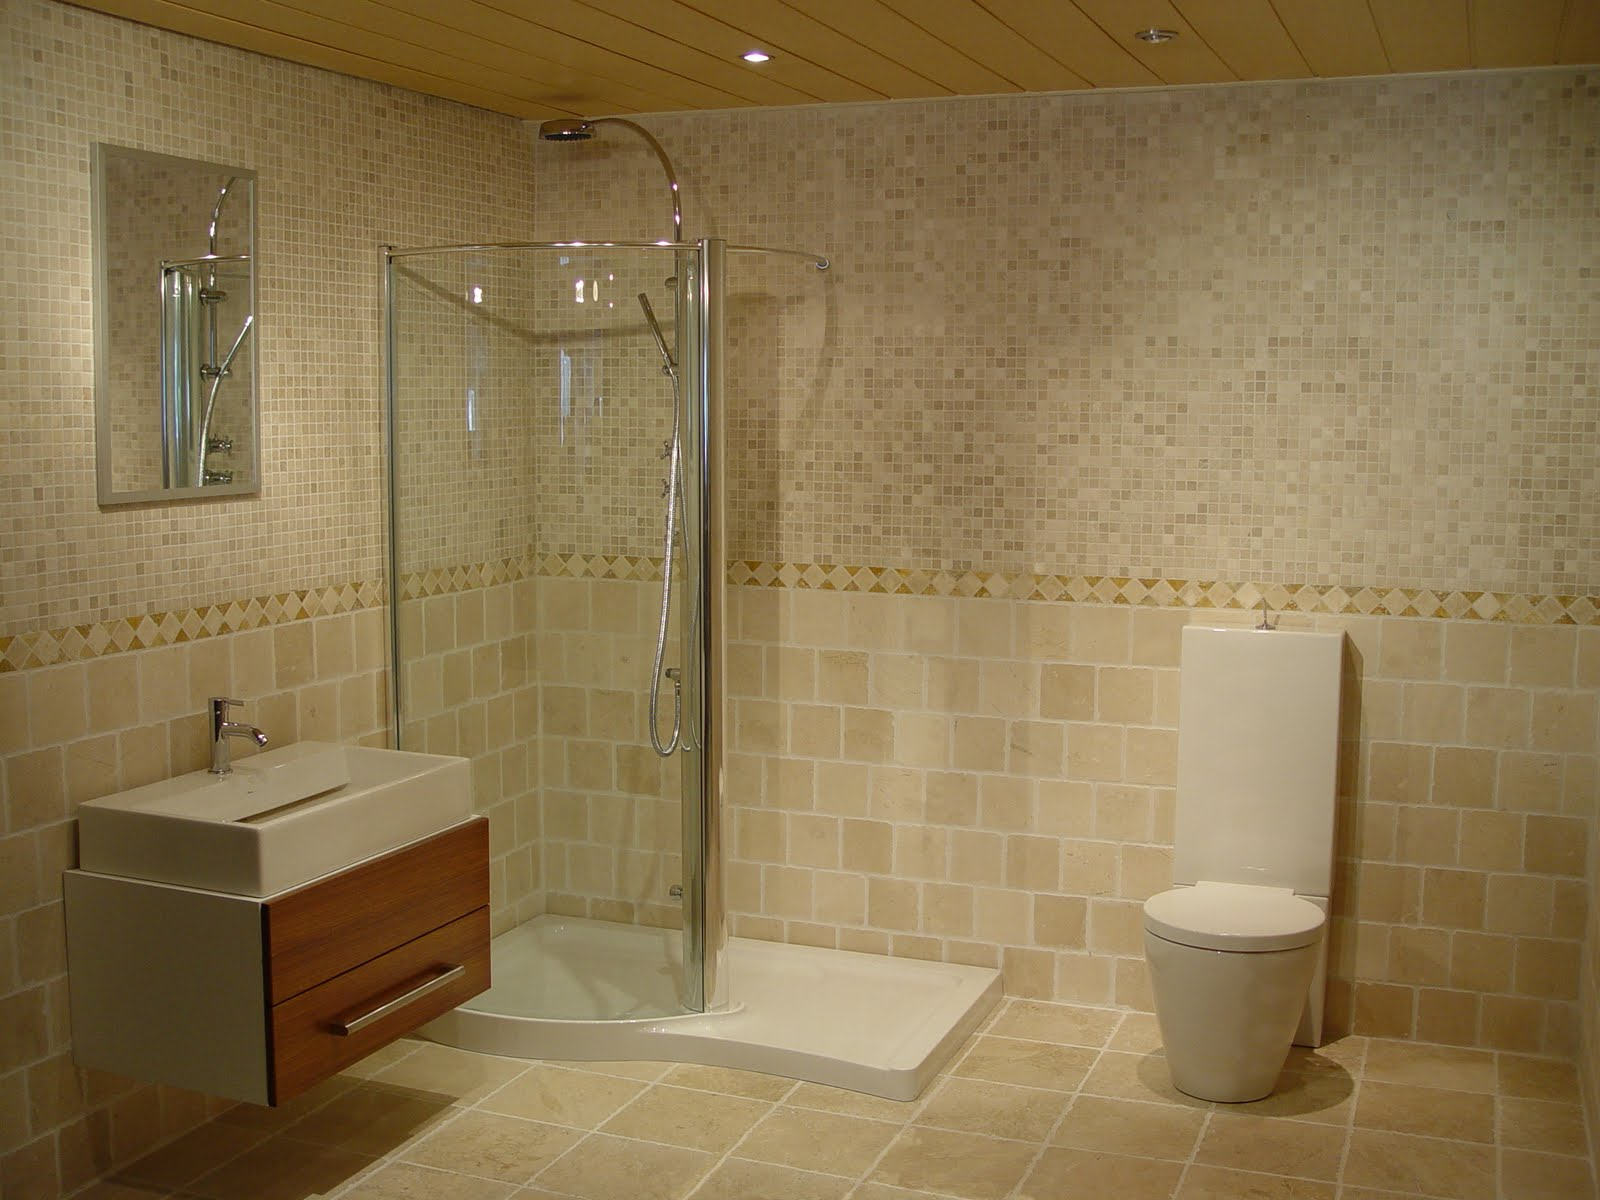 Bathroom Tile Designs: Art Wall Decor: Bathroom Wall Tiles Ideas